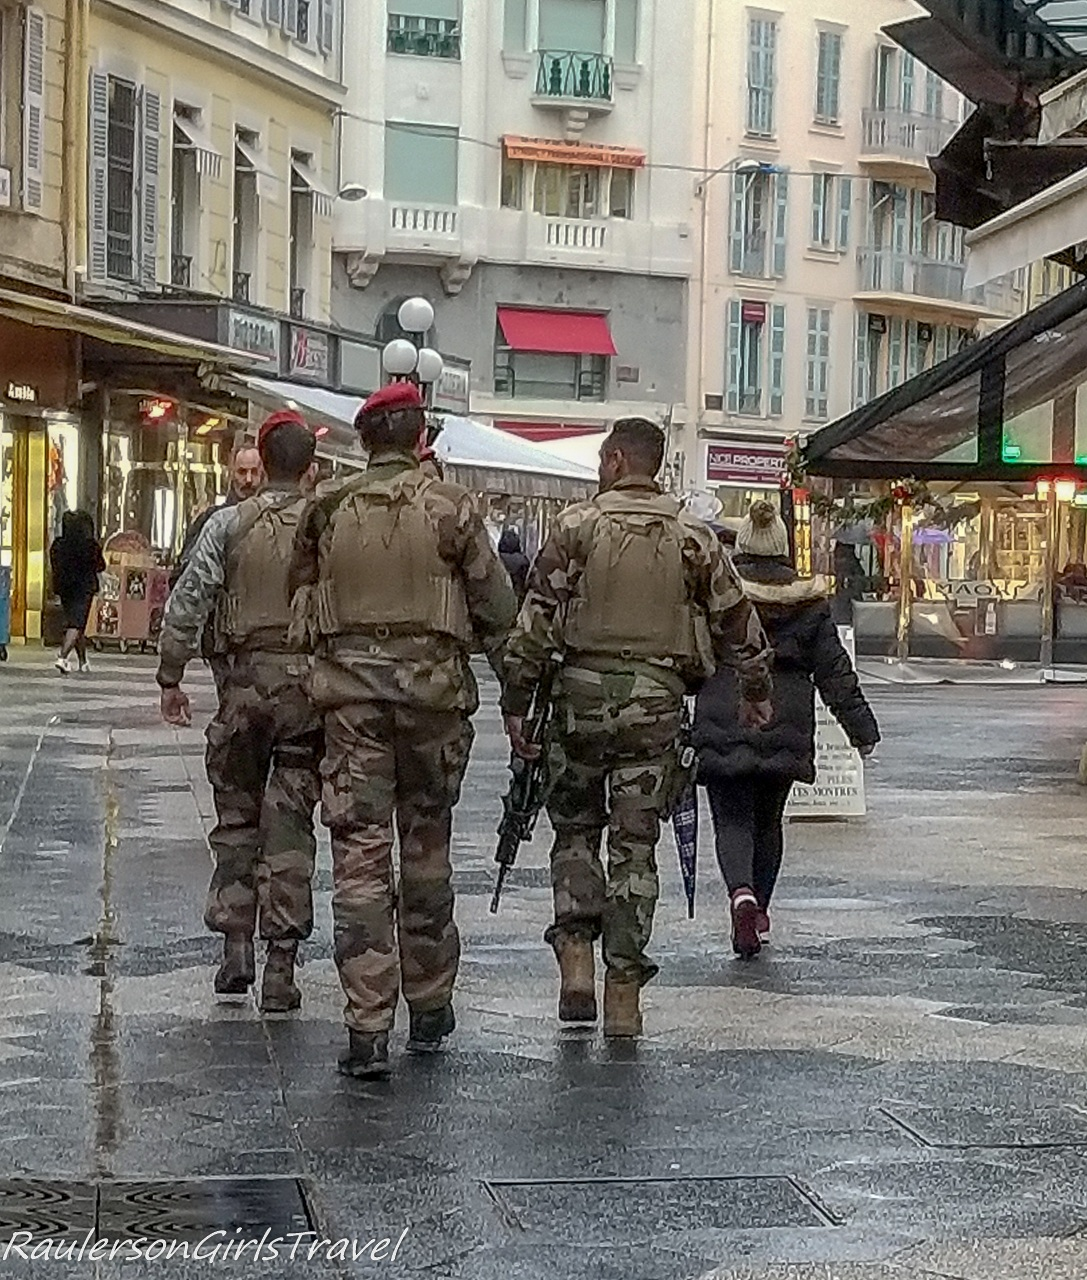 Military walking the streets in Nice